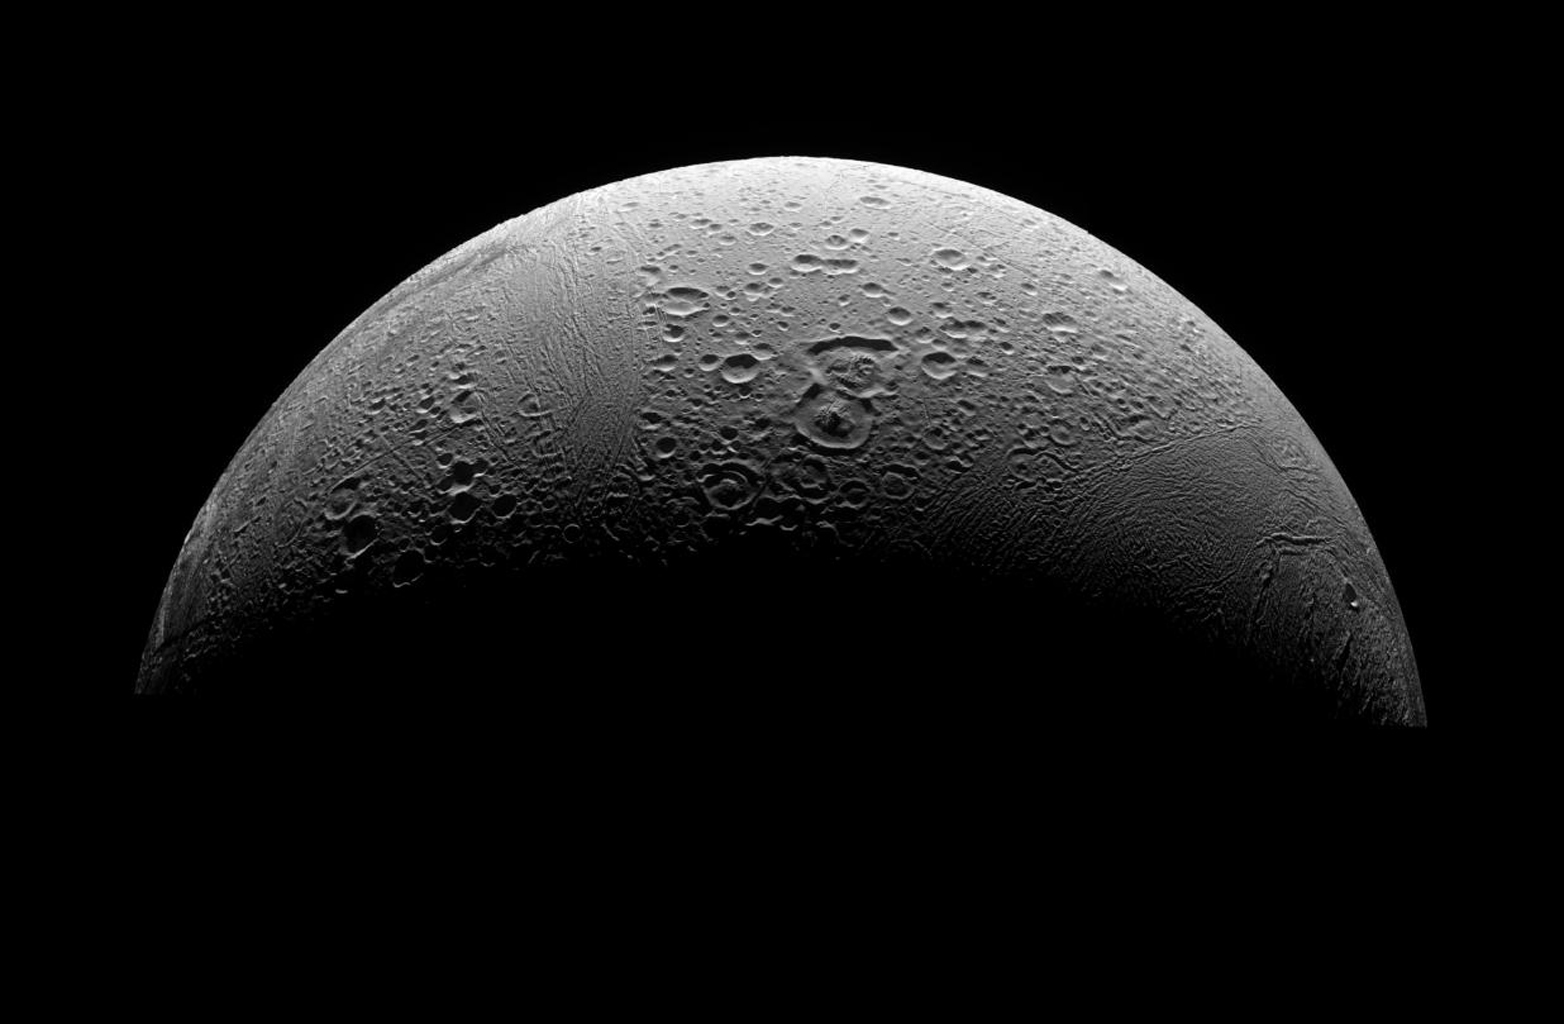 This three-image mosaic is the highest resolution view yet obtained of Enceladus' north polar region. This image was taken in visible light with NASA's Cassini spacecraft's narrow-angle camera on March 12, 2008.